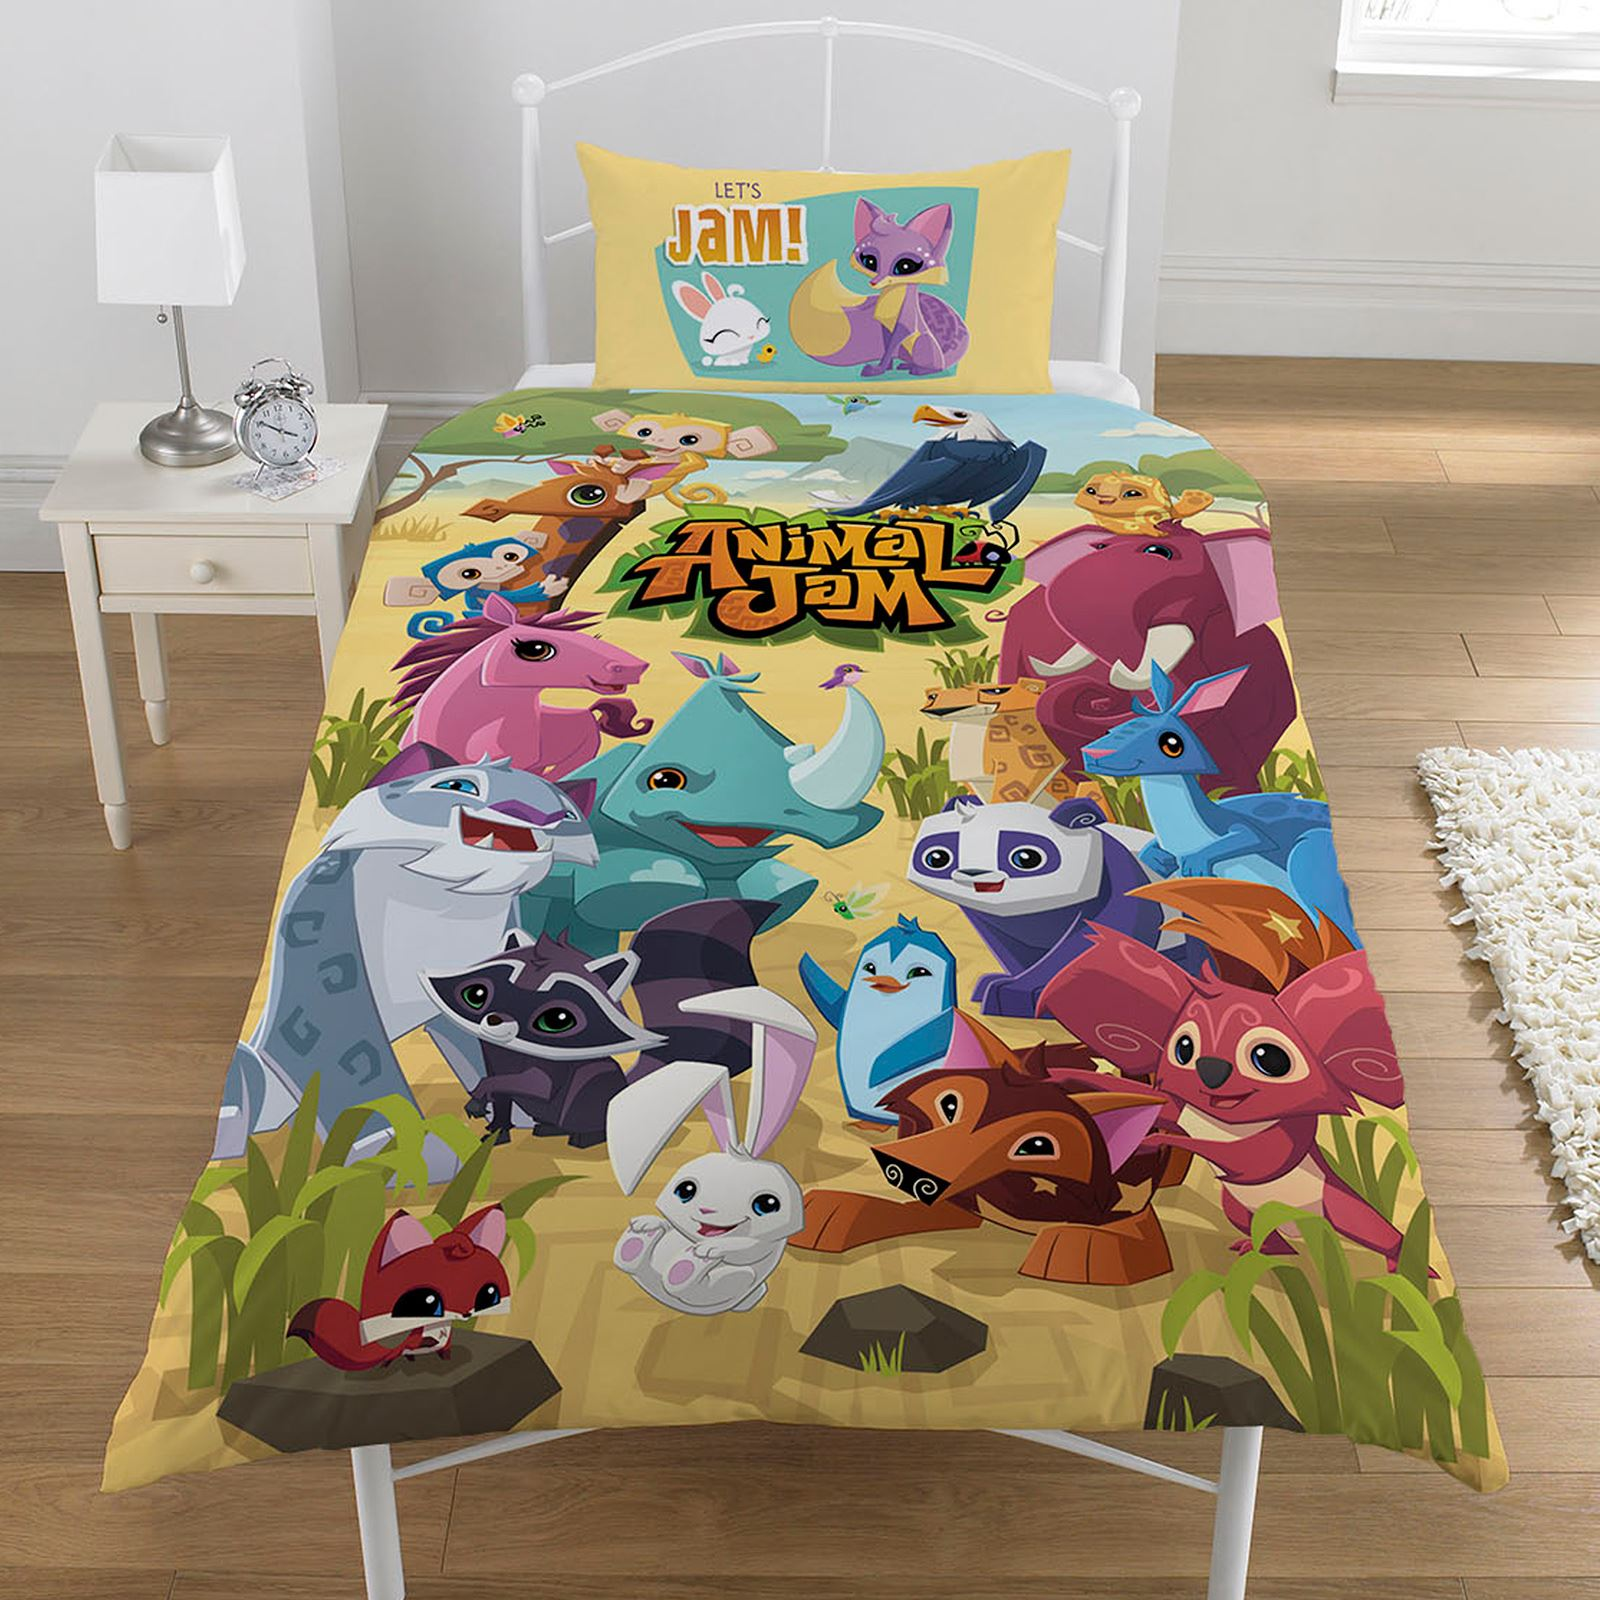 desk and chair animal jam covers rental chicago jungle themed duvet kids childrens animals single